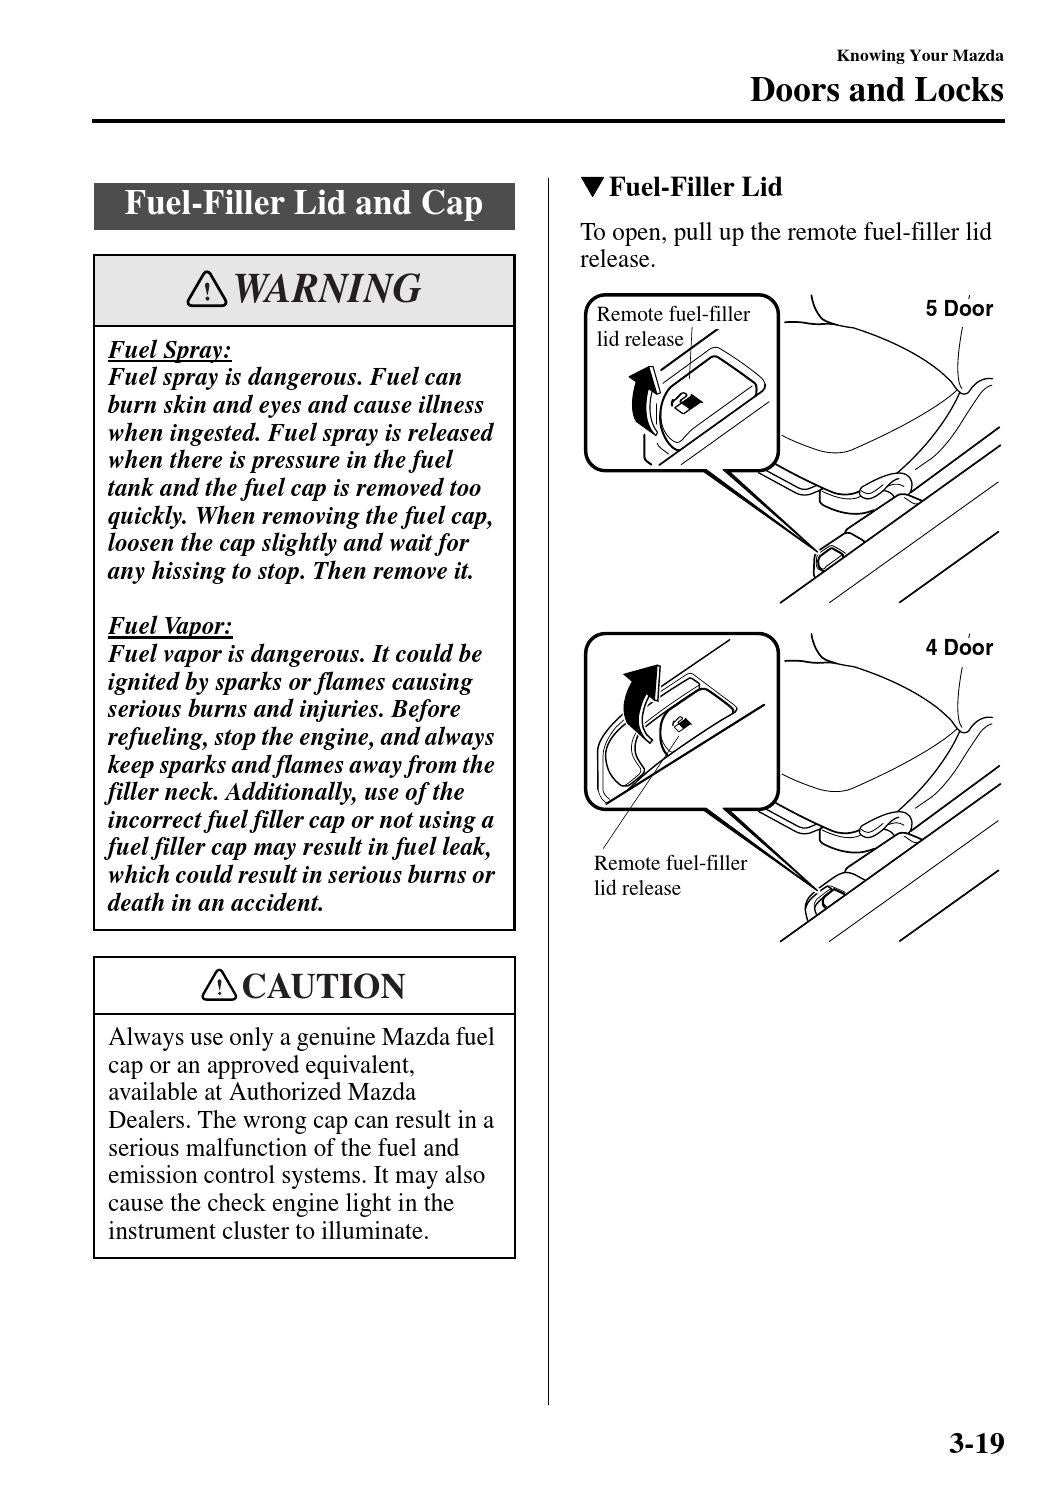 Mazda 3 Owners Manual: Fuel-Filler Lid and Cap